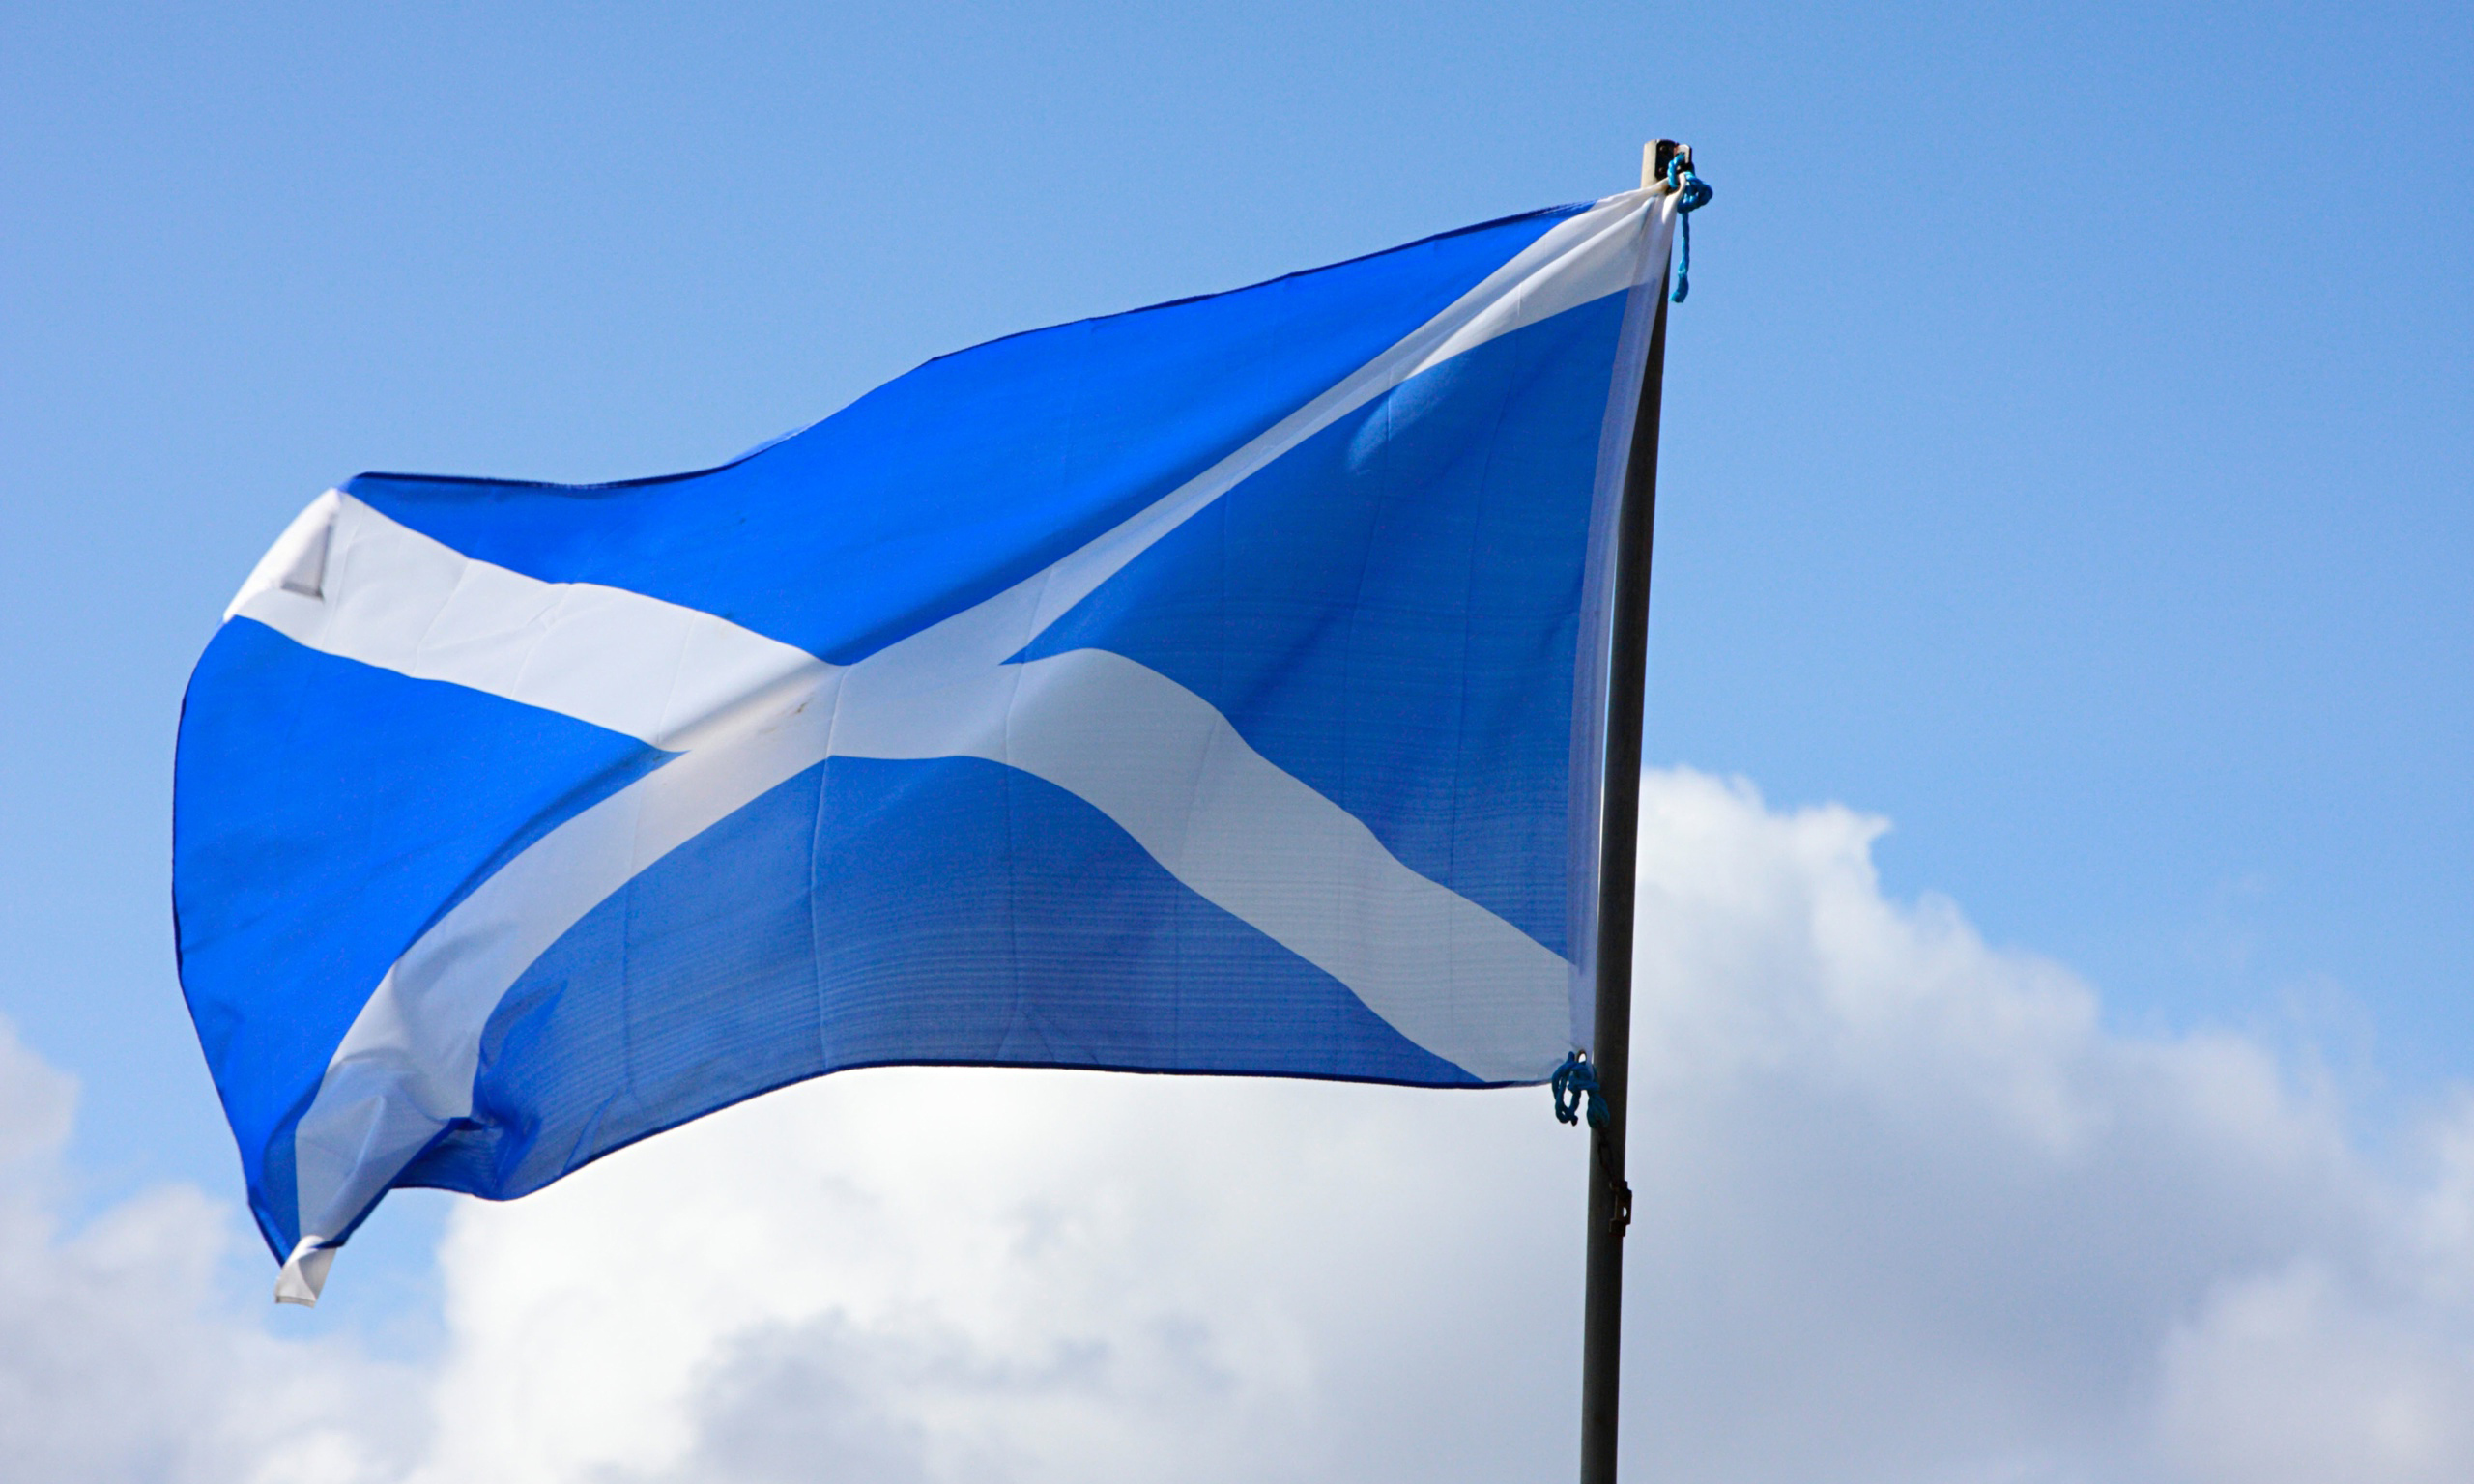 What's your favourite thing about Scotland? Let us know via Twitter (@sunday_post) or Facebook (facebook.com/sundaypostuk)